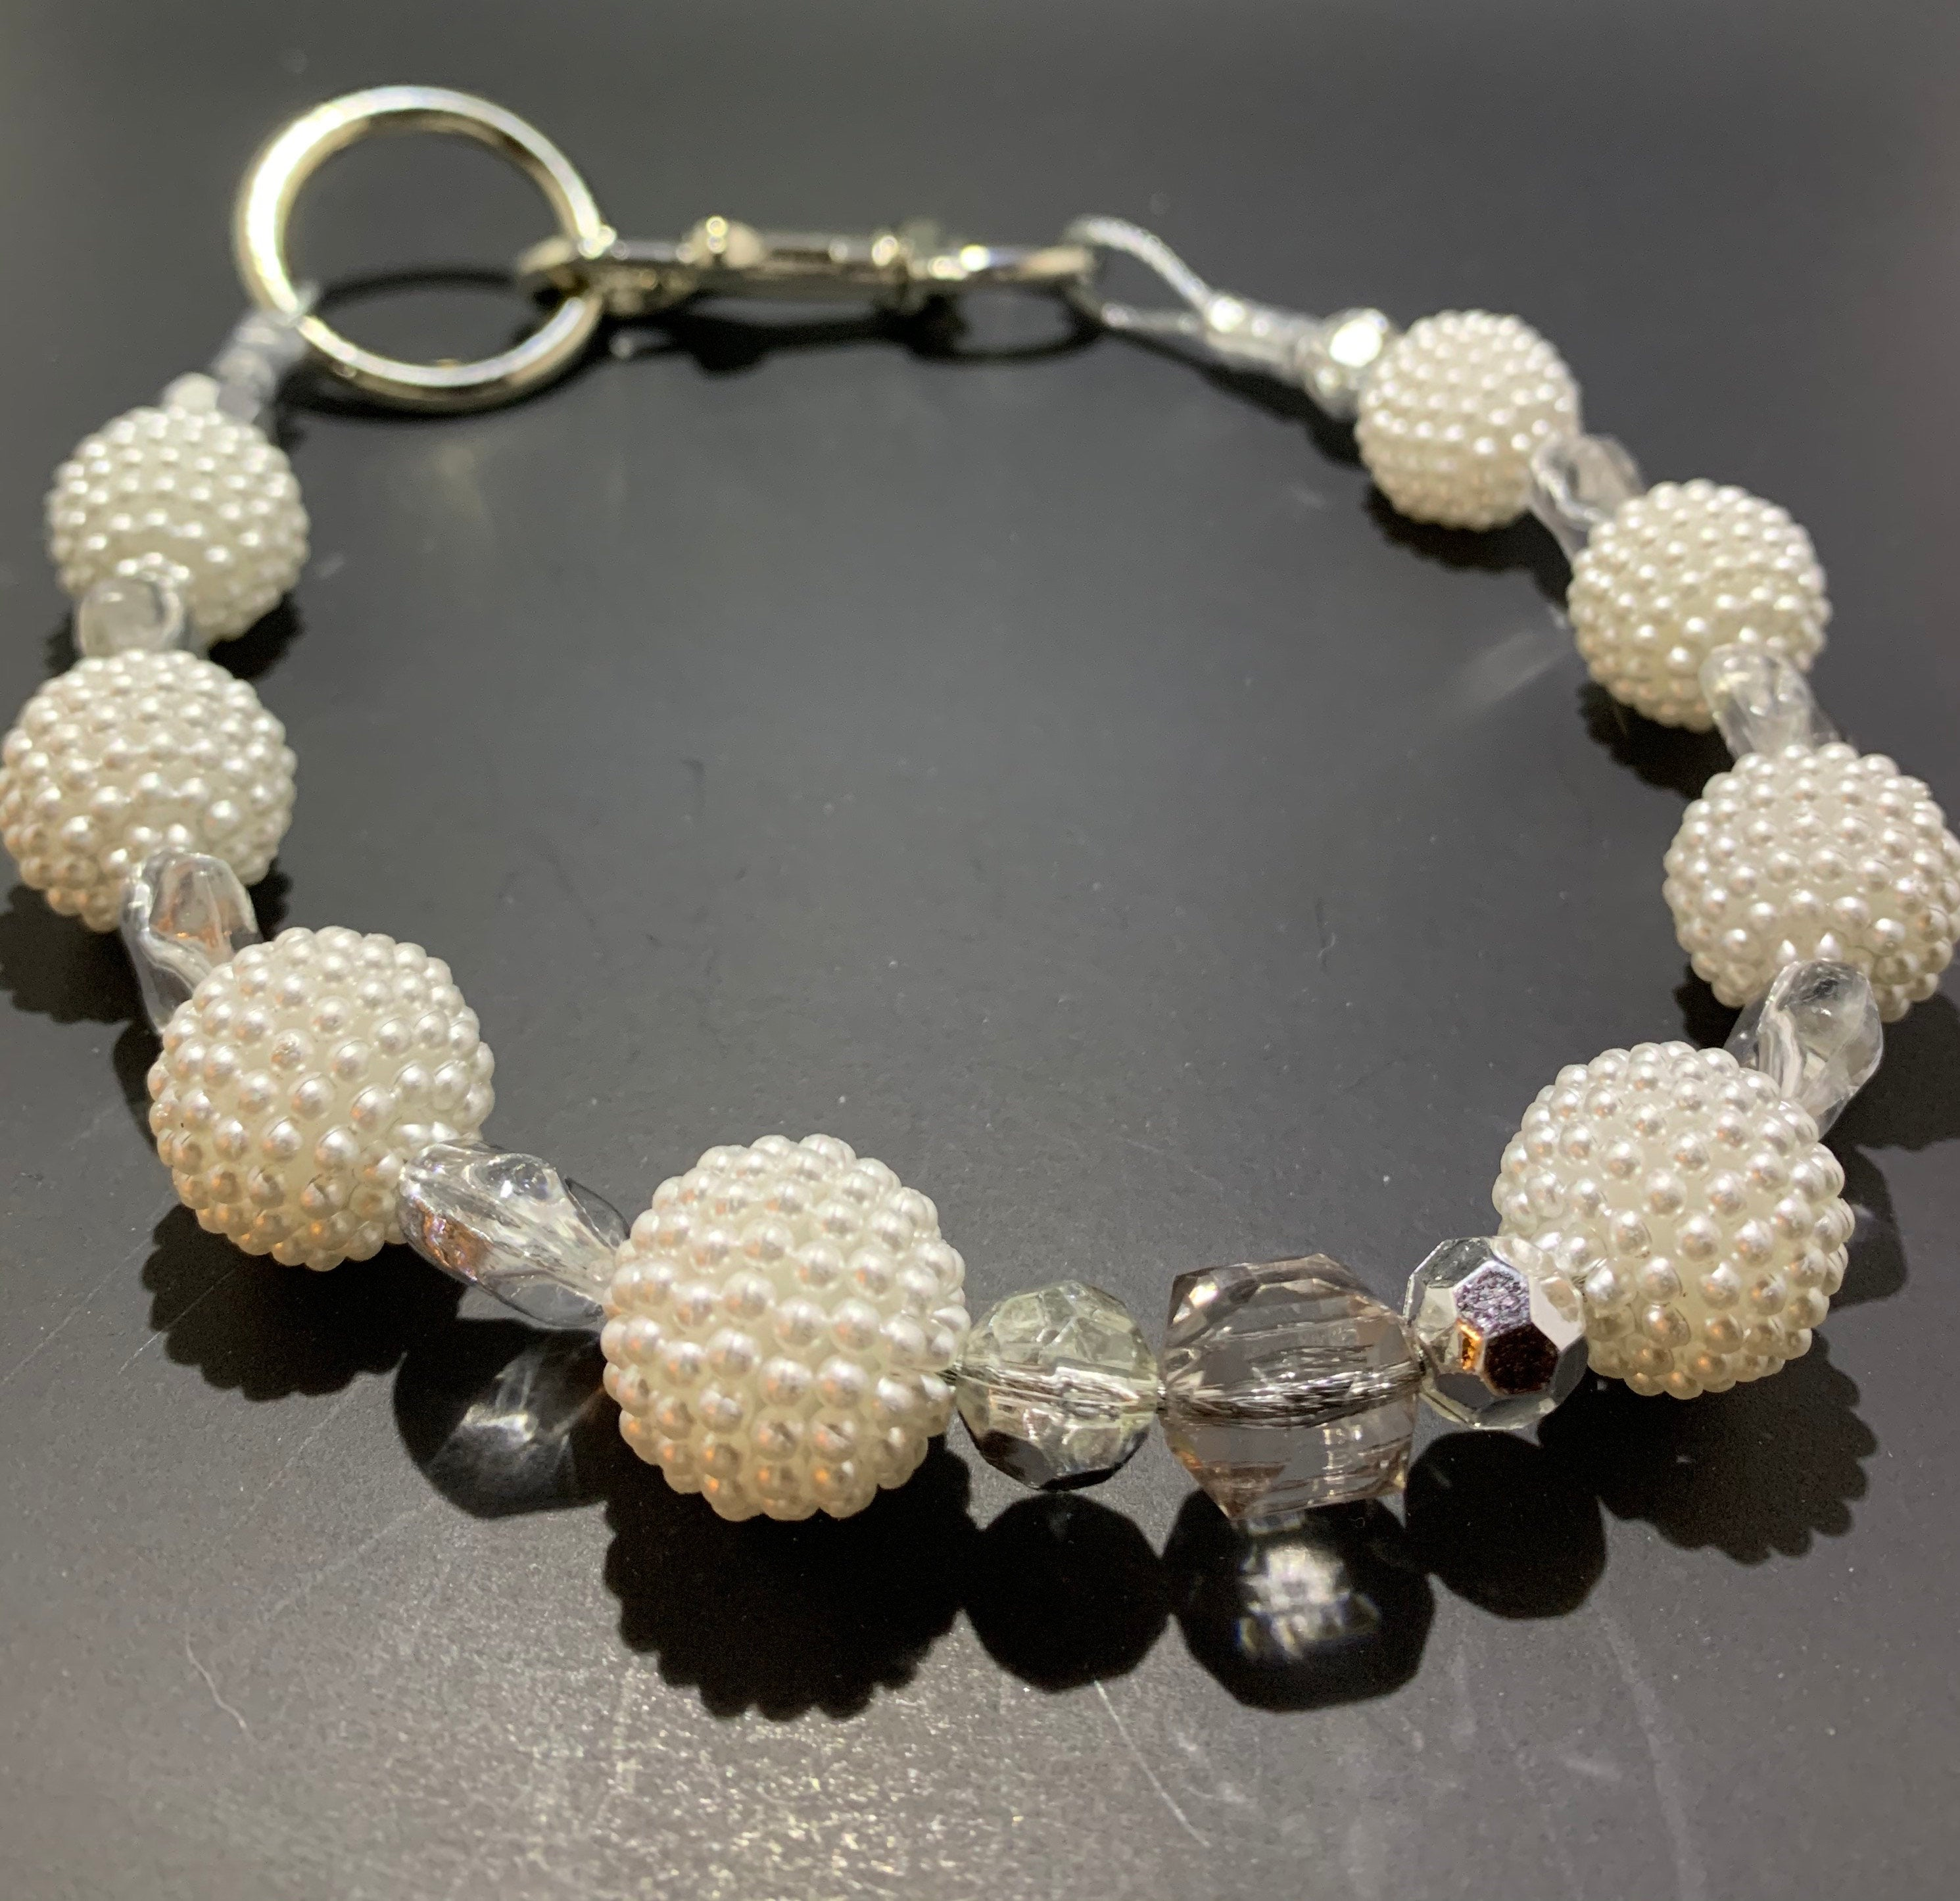 Diamonds and Pearls dog collar - So Swag Apparel